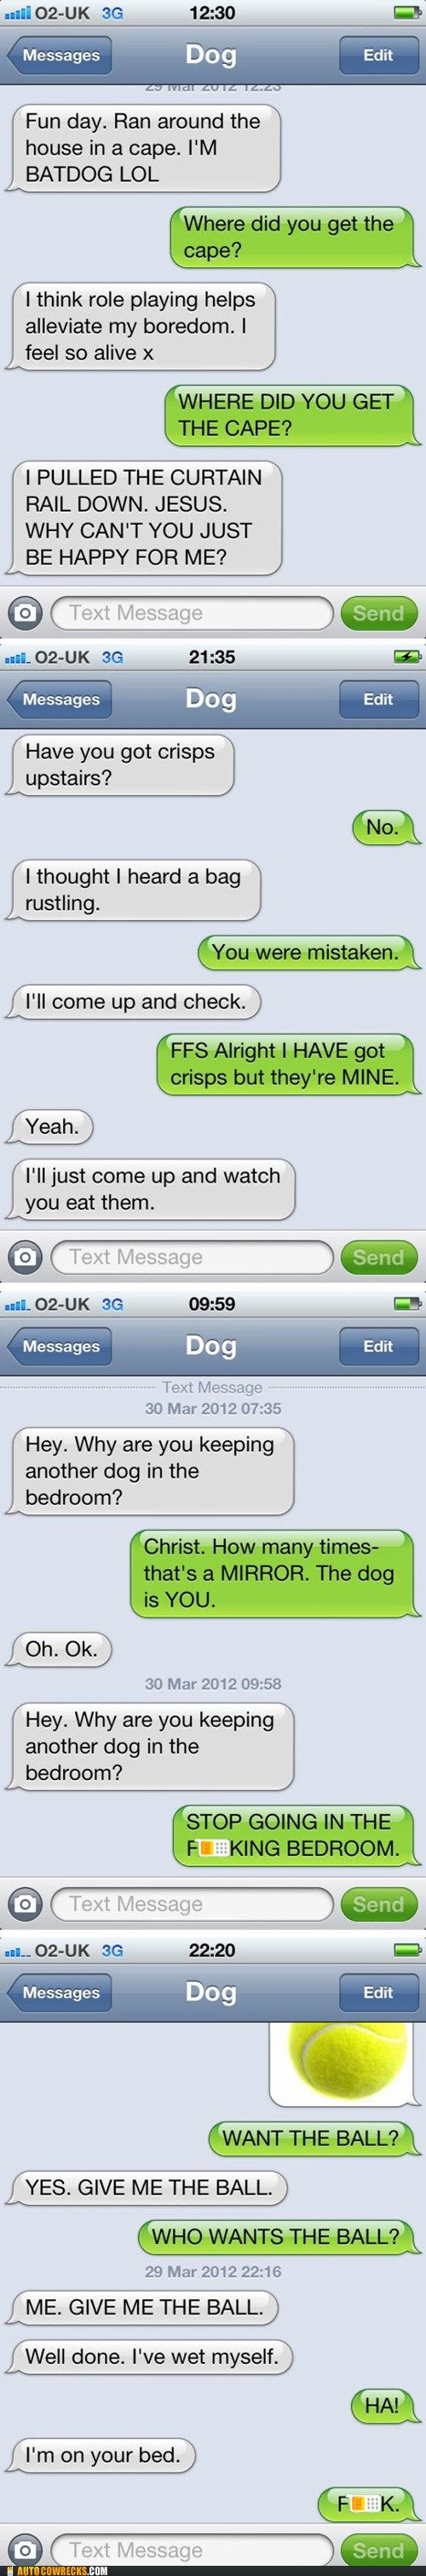 If dogs could text! funny! cute: Laughing, Random, Dogs Texts, Too Funny, Funny Stuff, So Funny, Funny Dogs Stuff, I Love Dogs, Animal